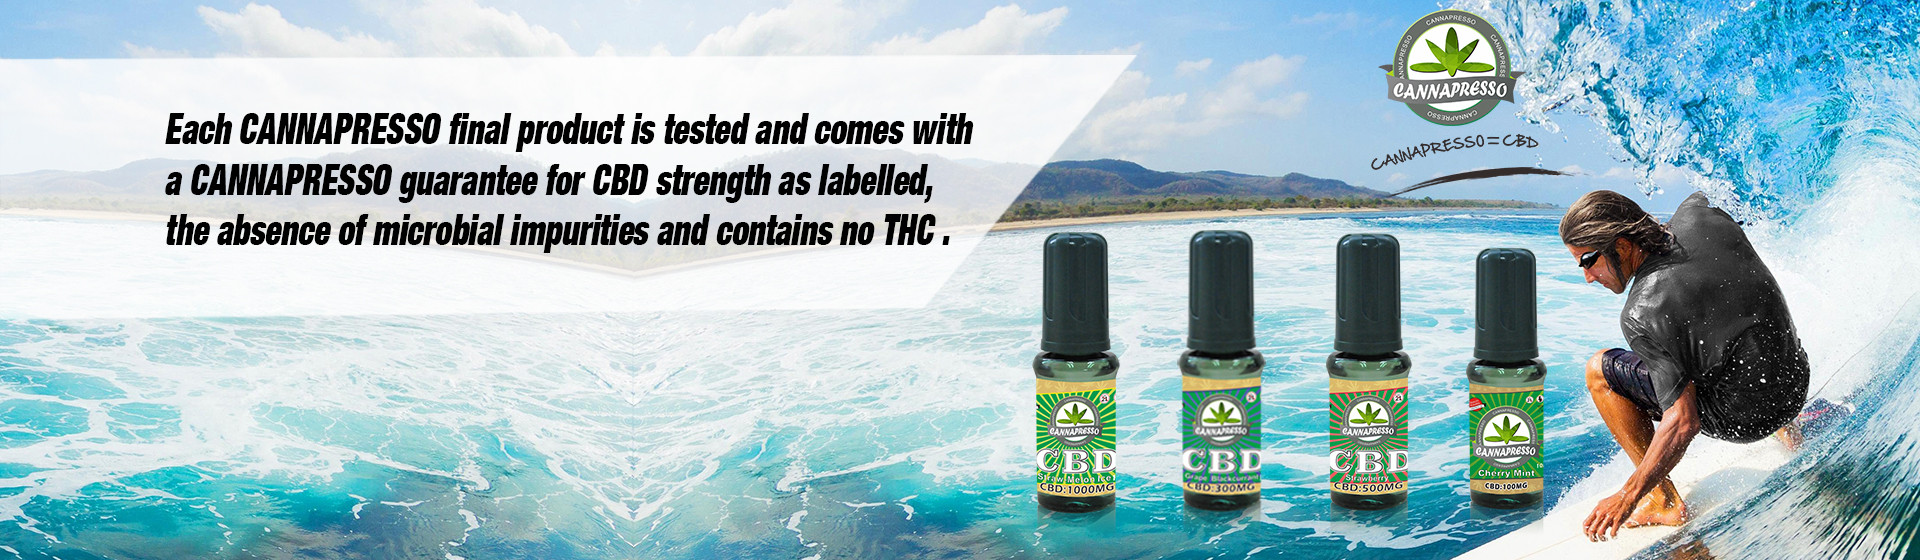 Cannapresso CBD oil vape